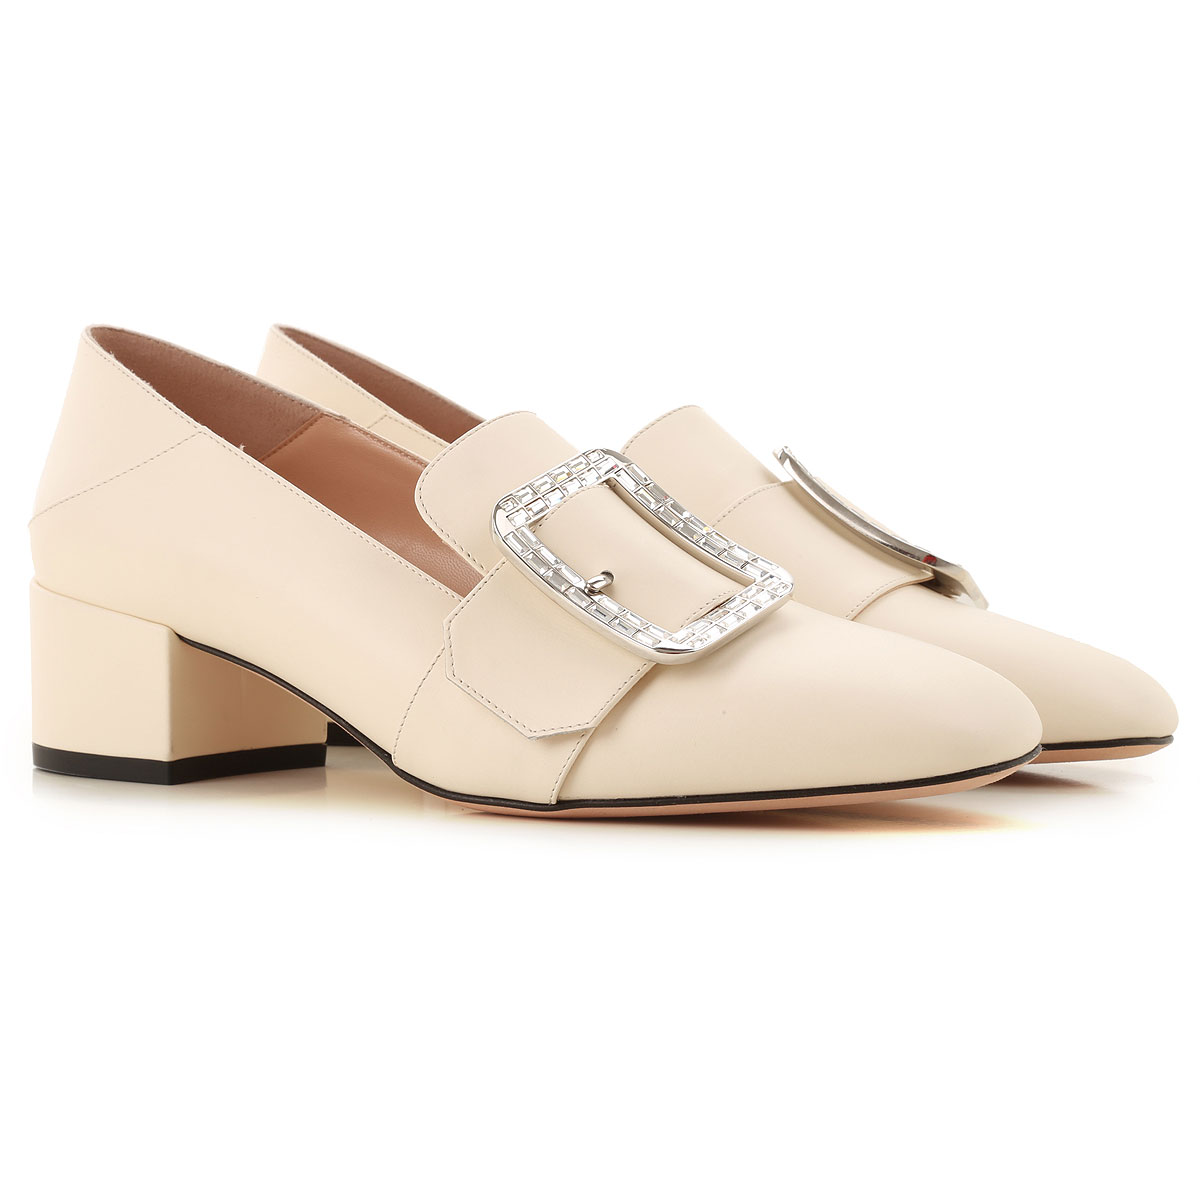 Bally Pumps & High Heels for Women On Sale, Bone, Leather, 2019, EUR 36 - UK 3 - USA 5.5 EUR 40 - UK 7 - USA 9.5